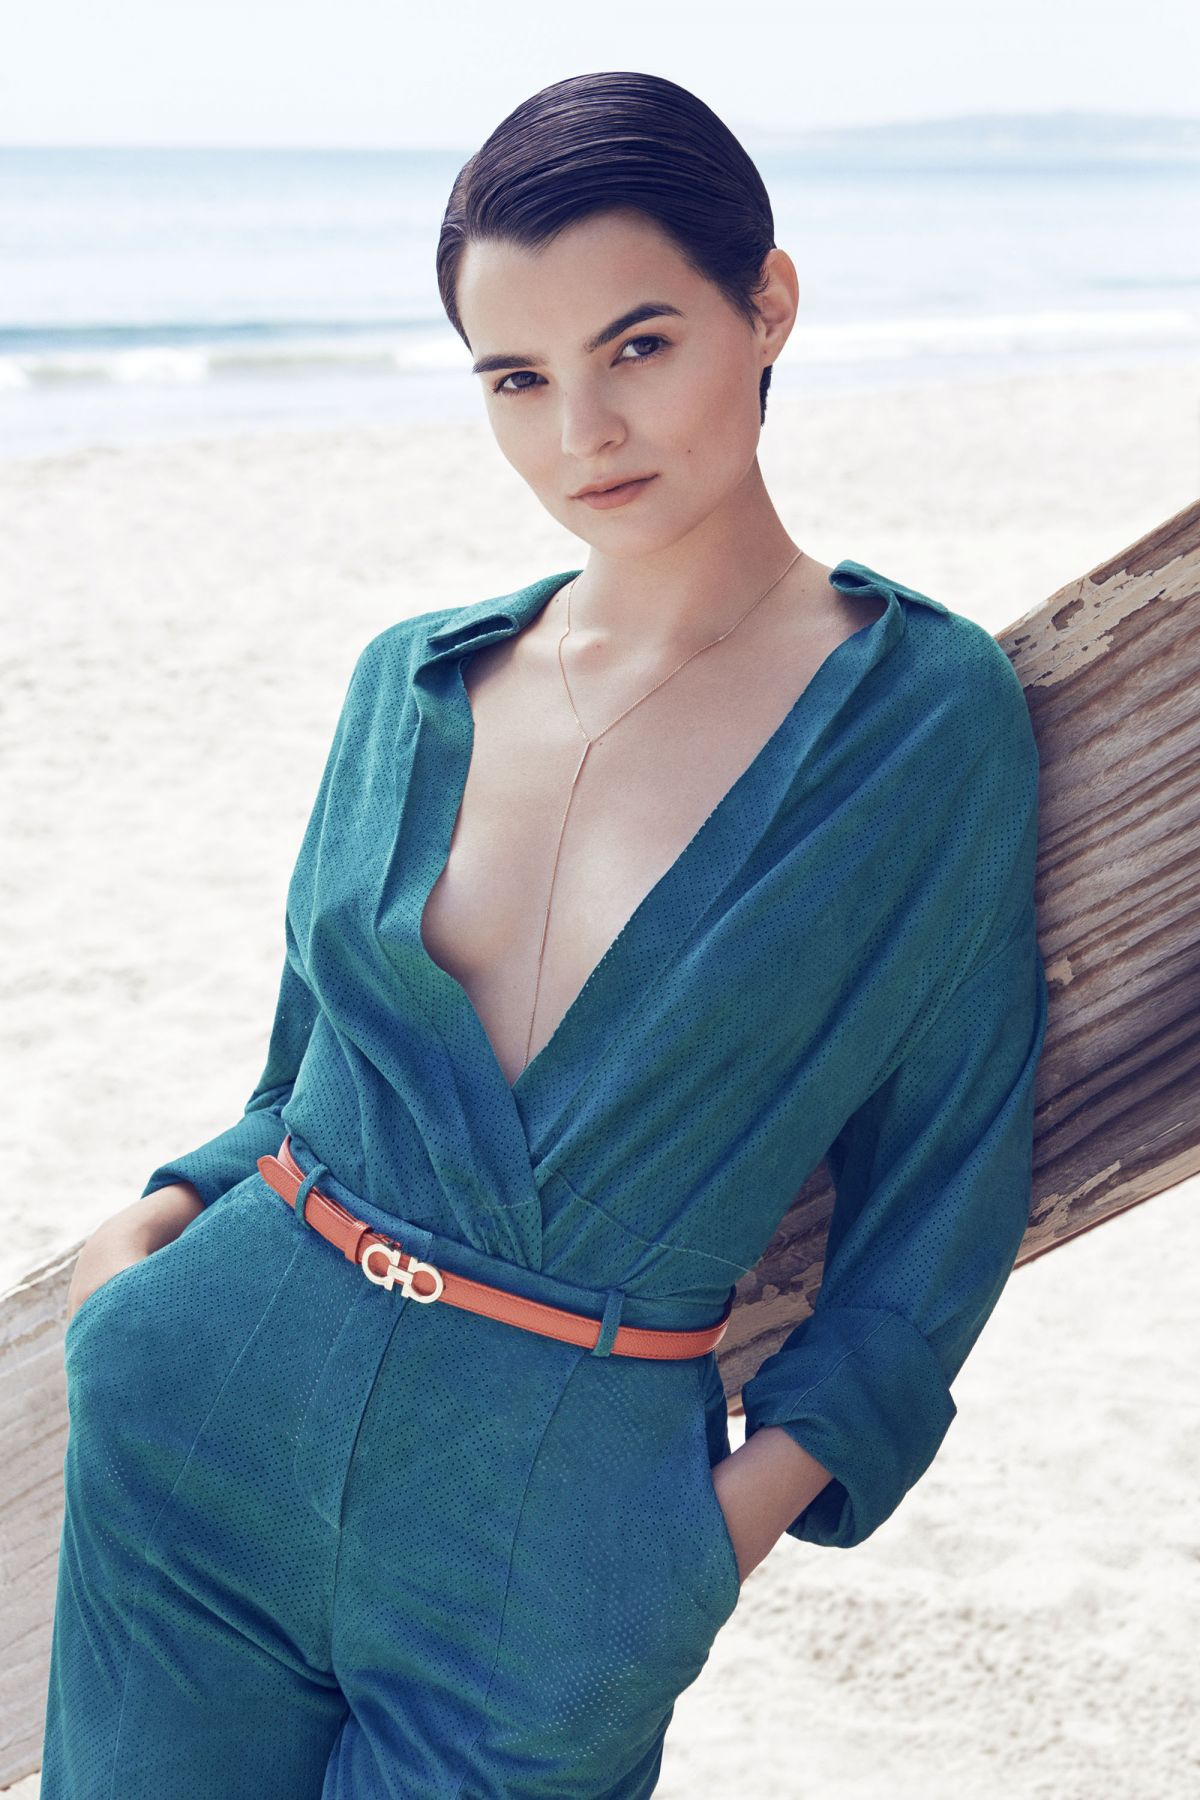 brianna-hildebrand-for-vanity-fair-magazine-italy-april-2018-2.jpg